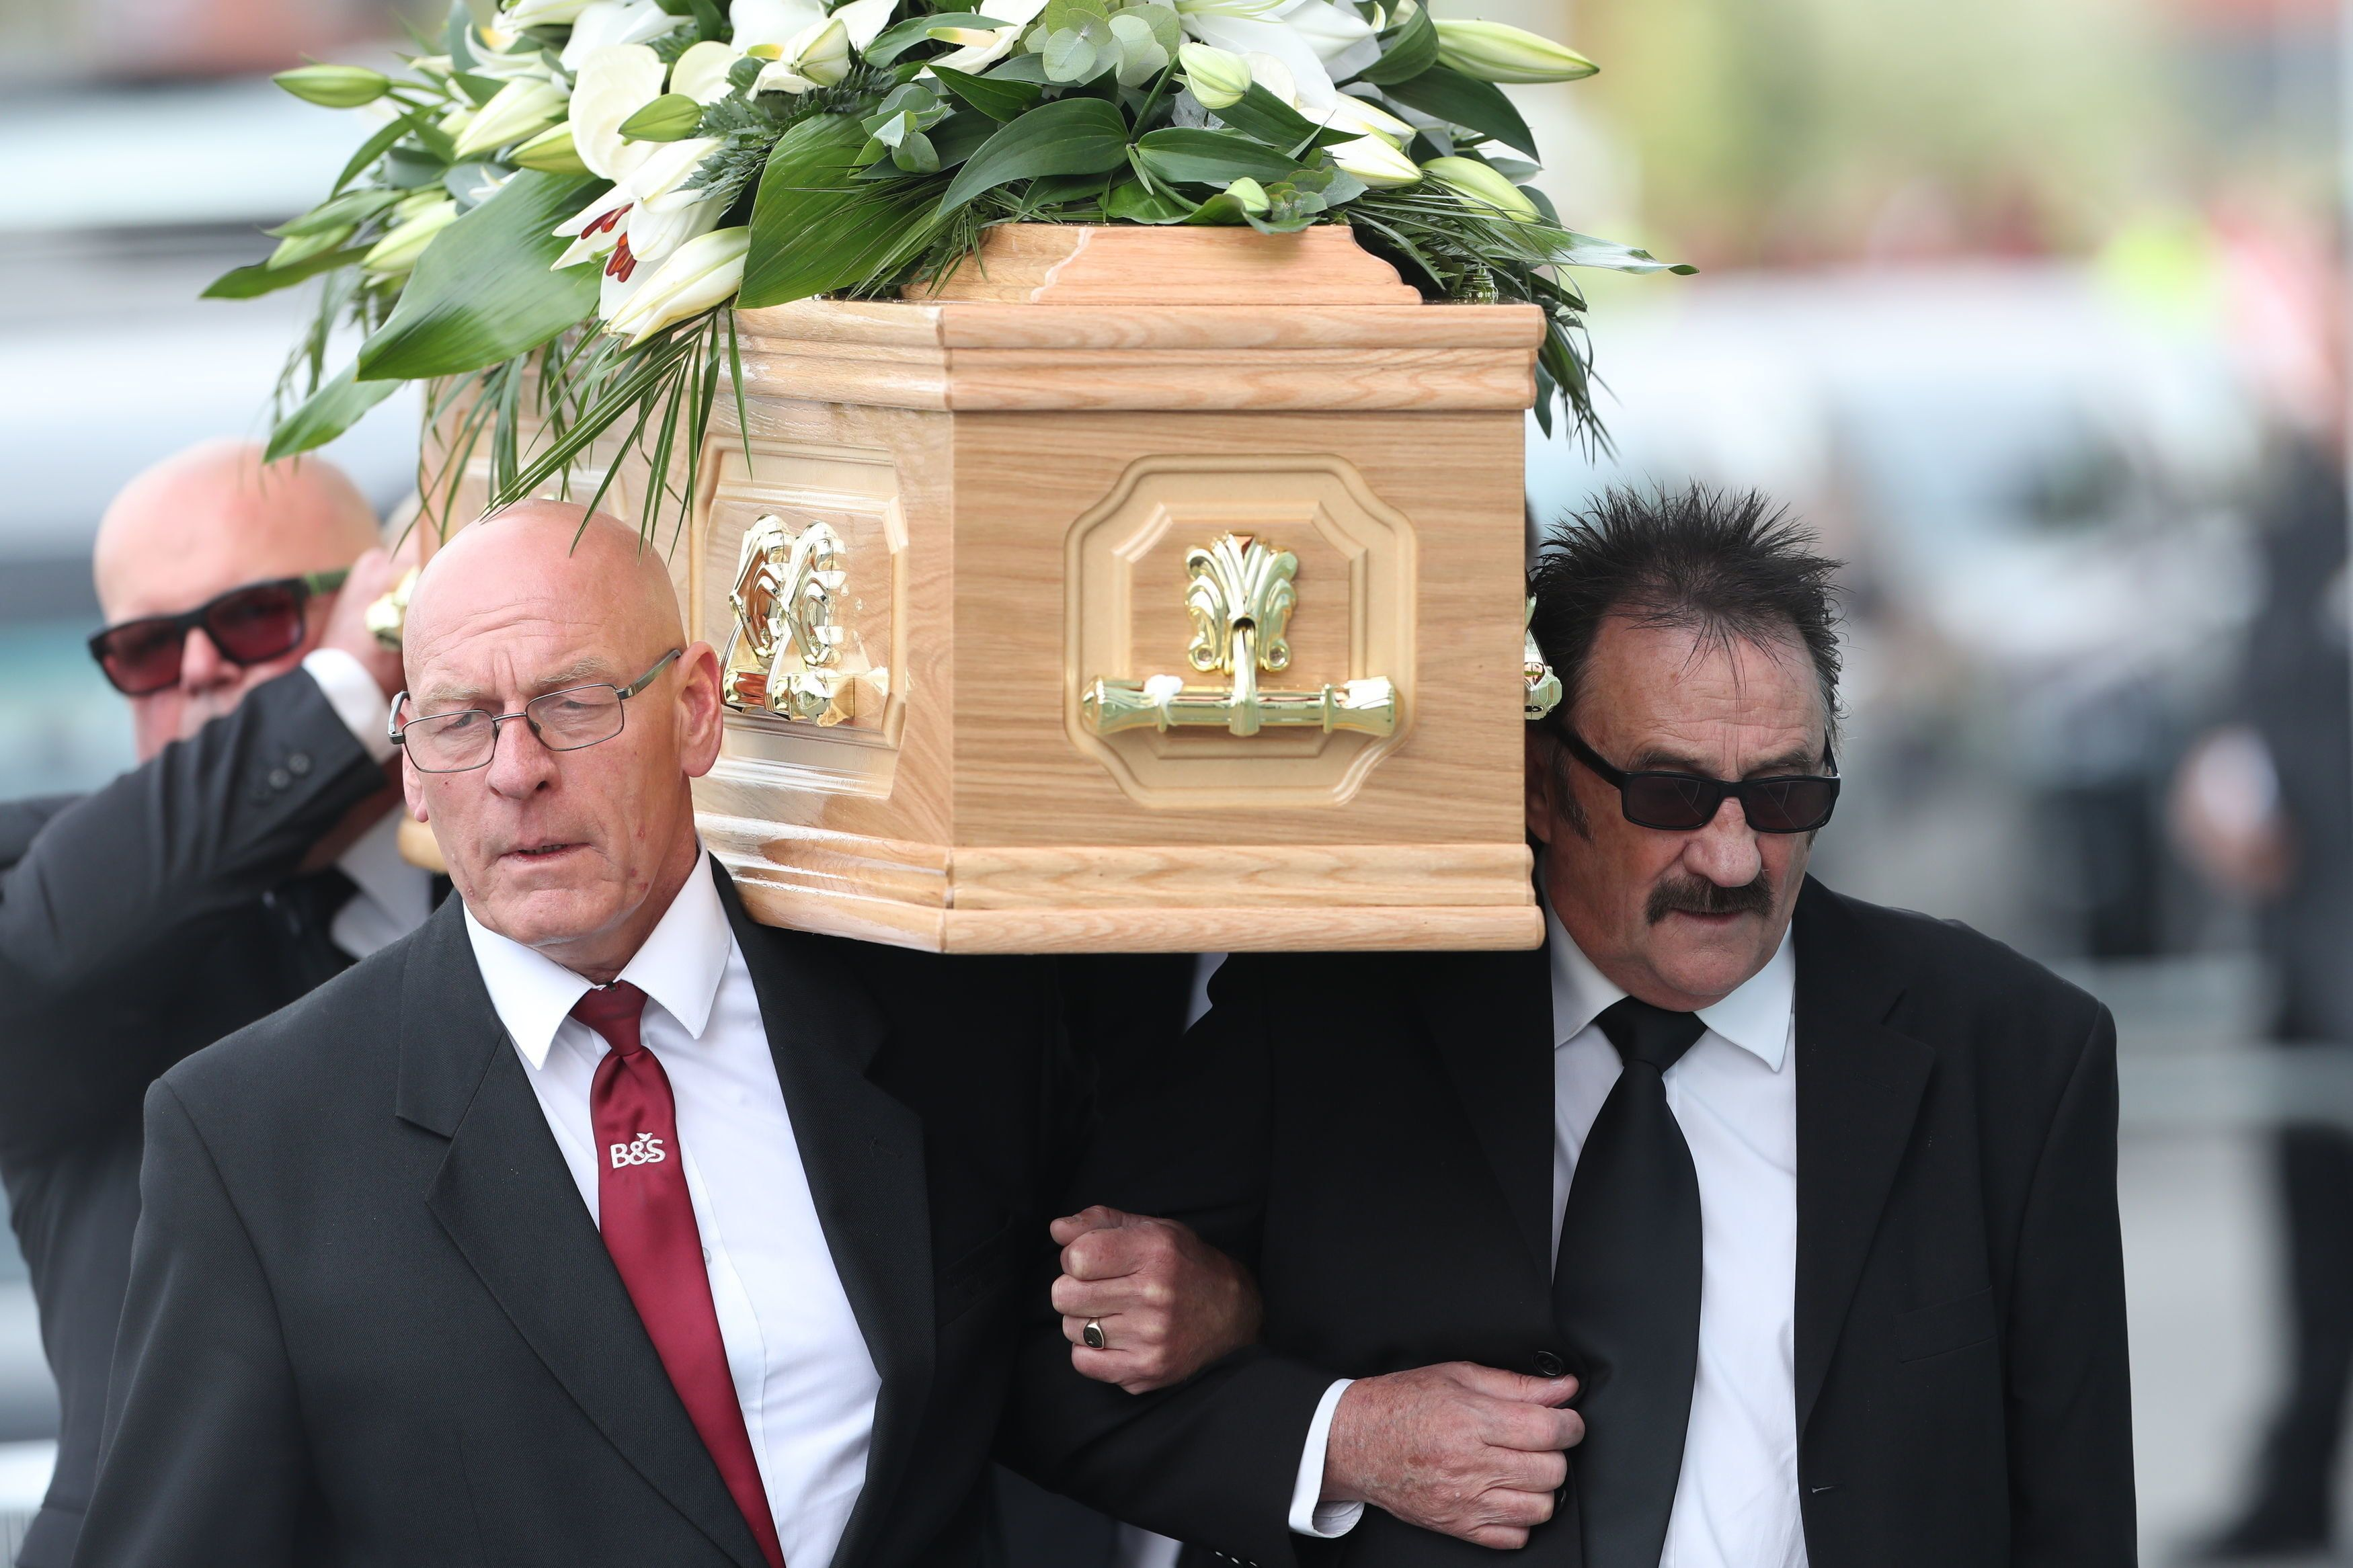 Celebrities line up to pay tribute to comedy star Barry Chuckle